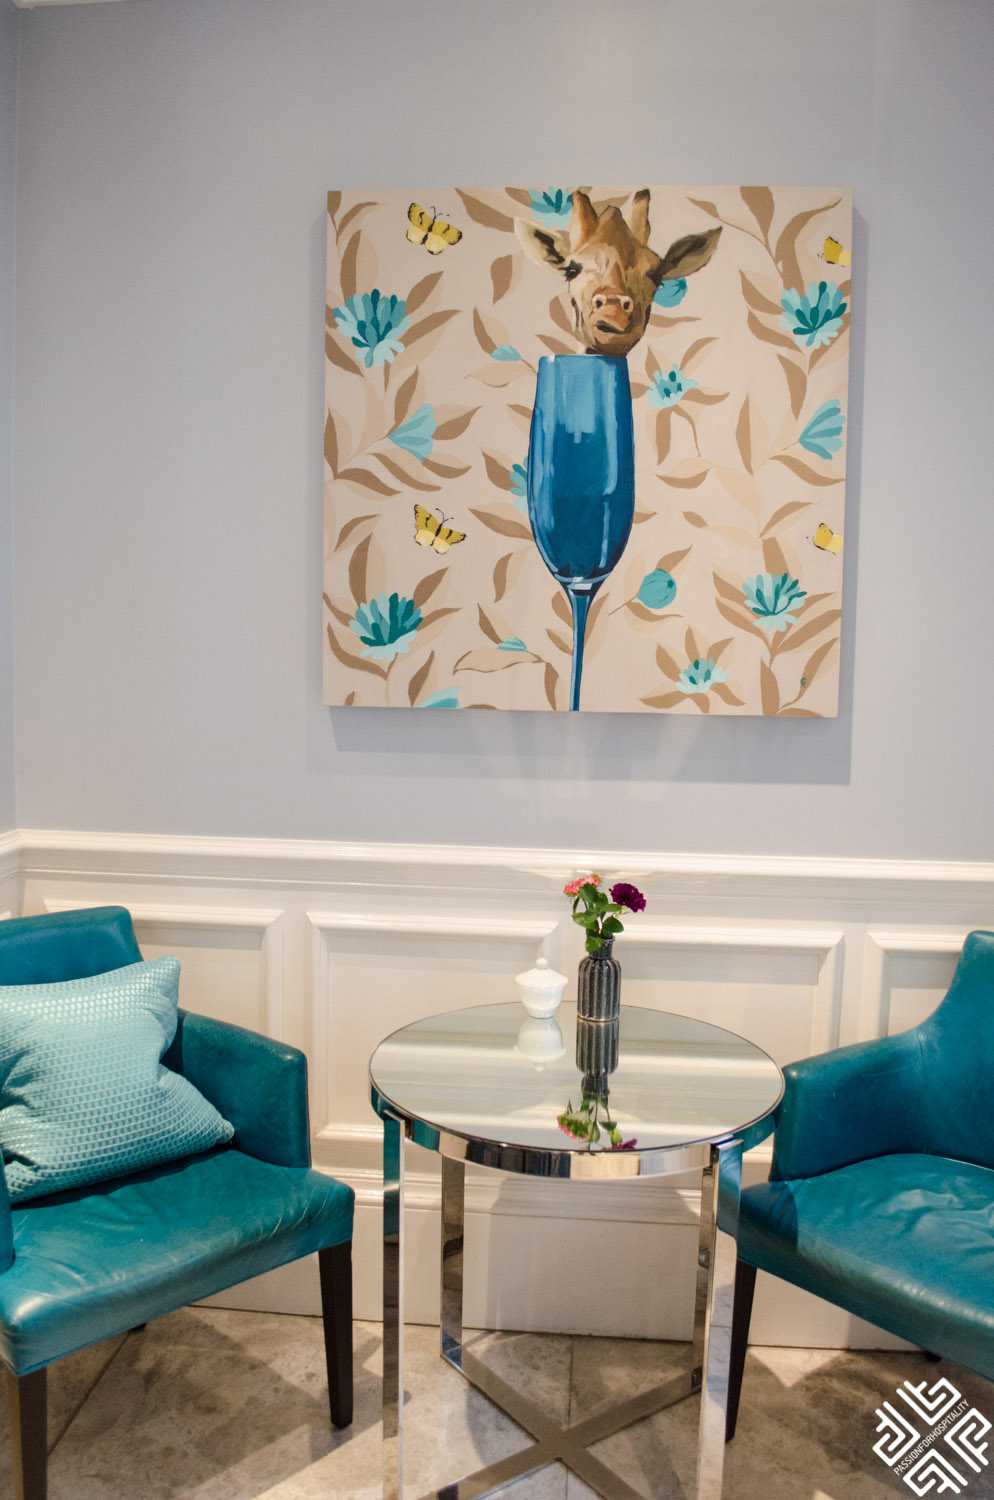 The Ampersand Hotel: An exquisite boutique luxury hotel in South Kensington